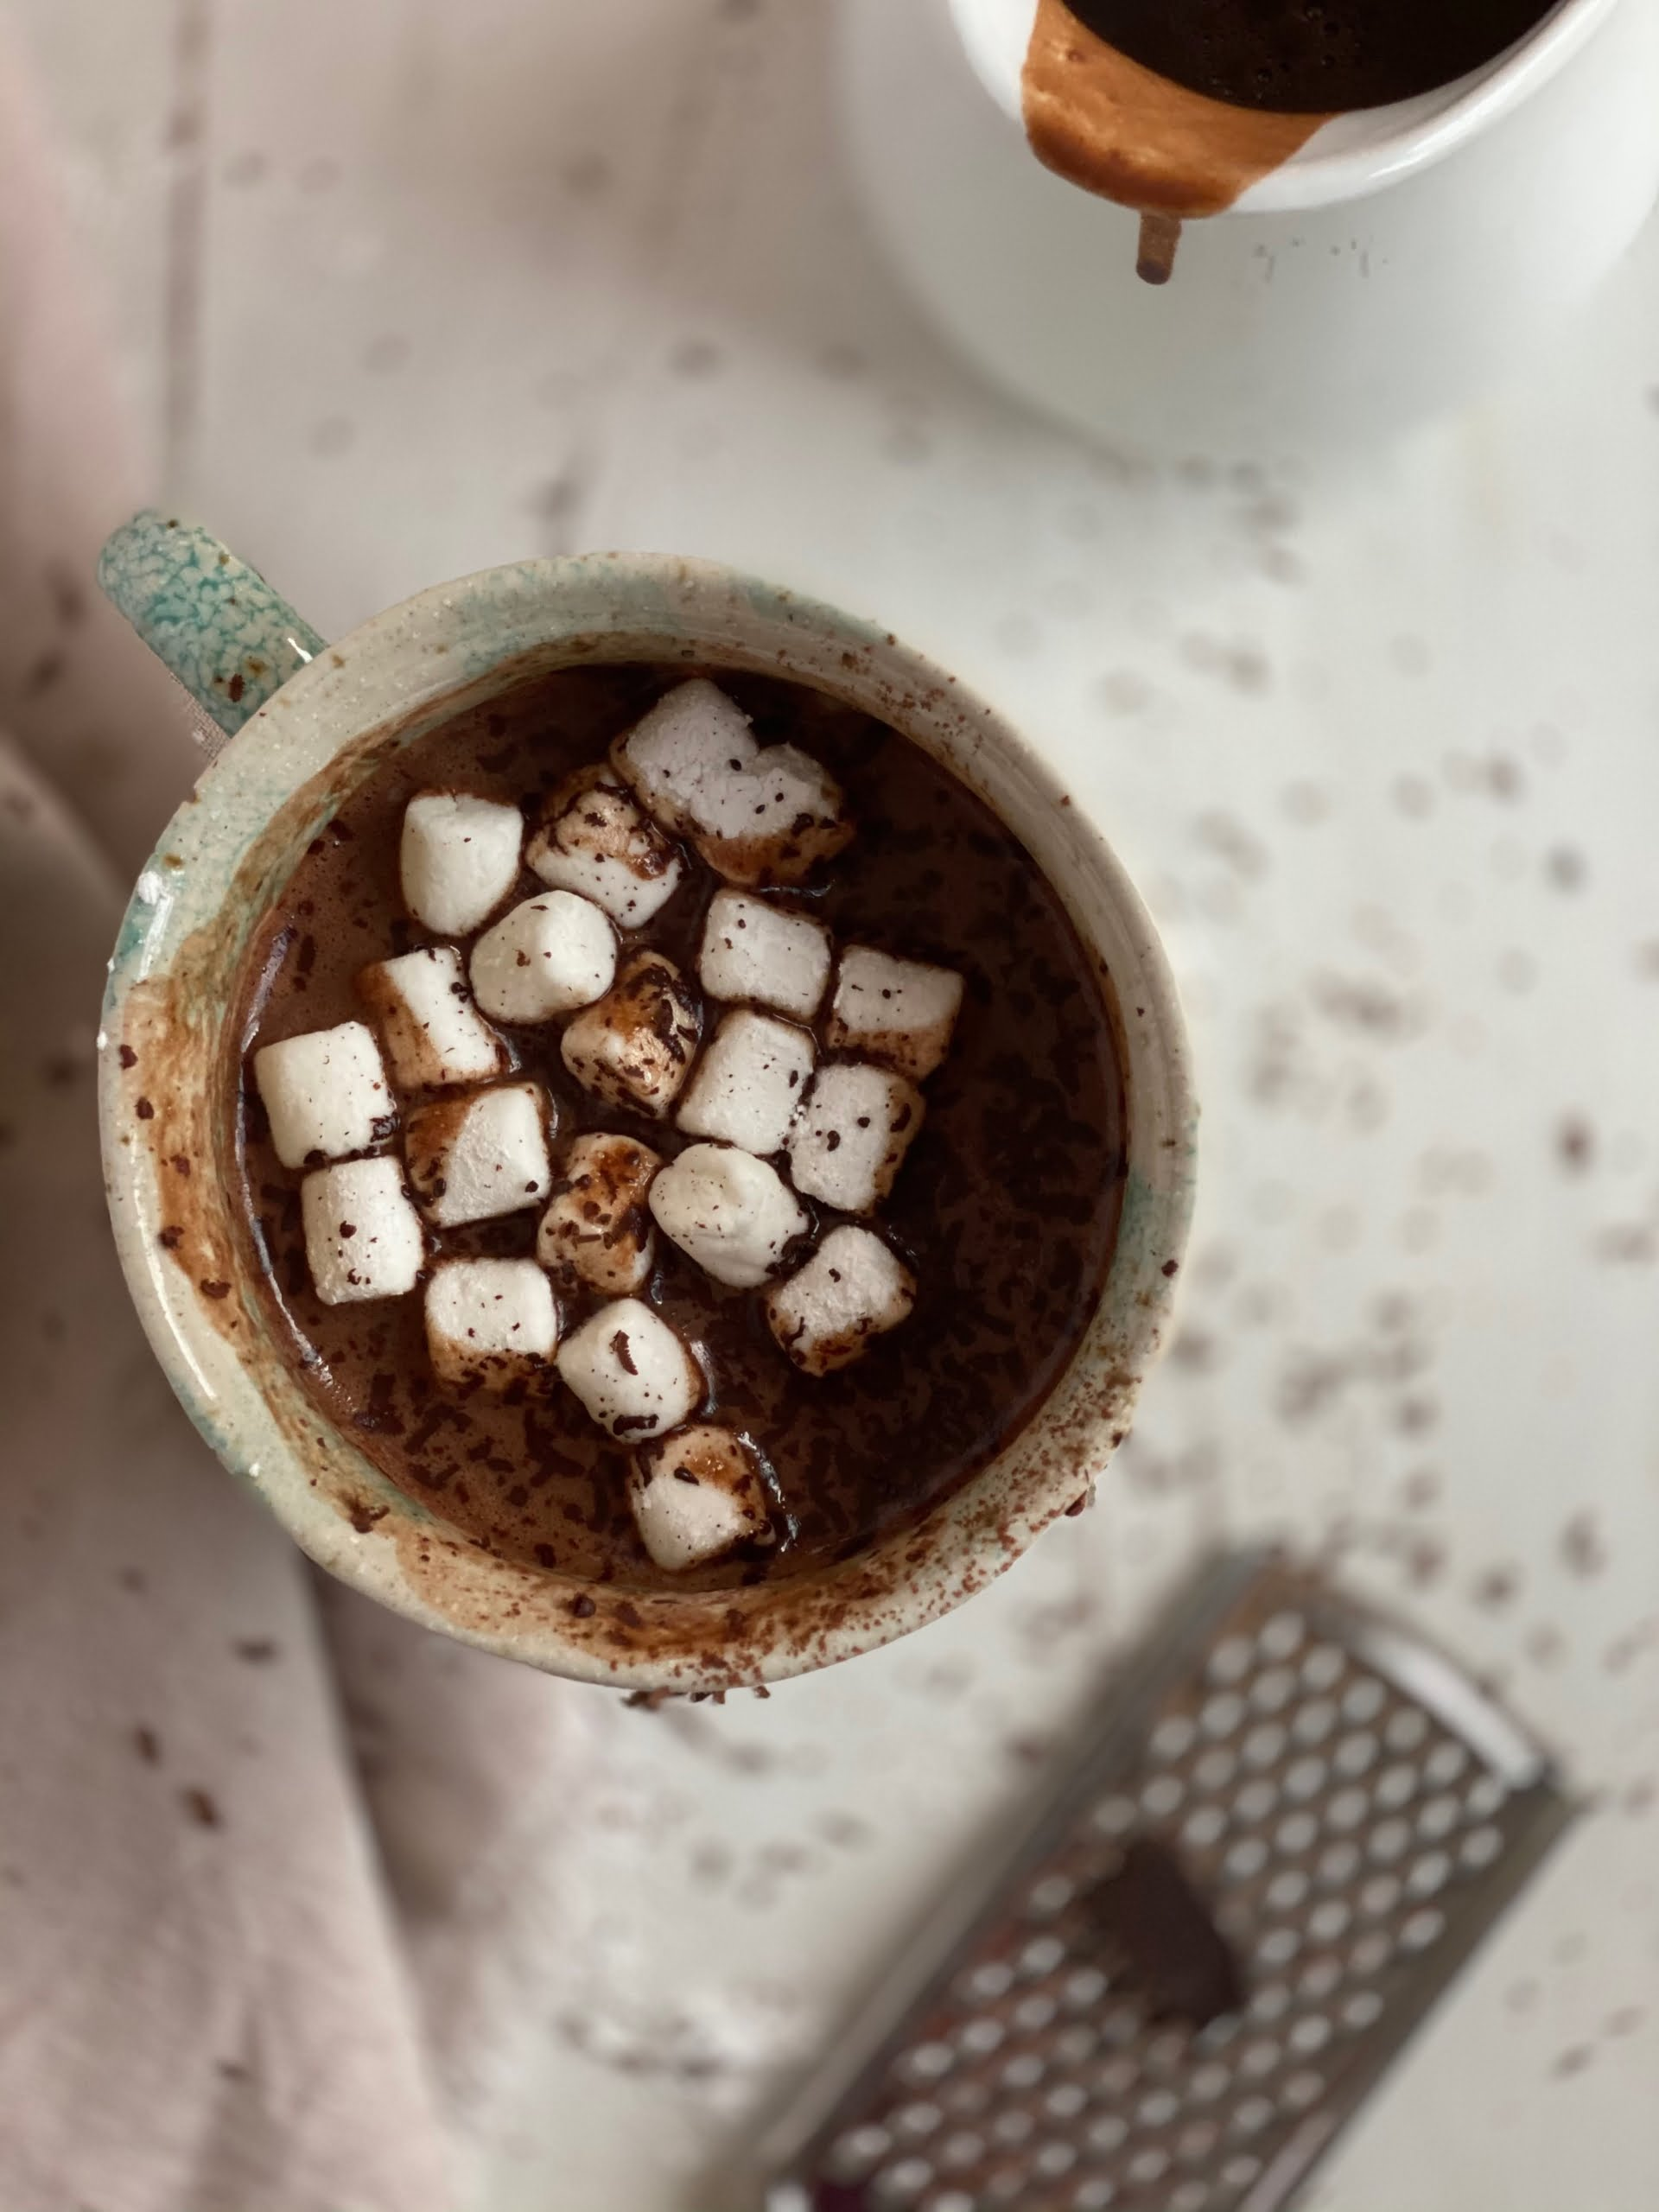 Mocha hot chocolate with marshmallows and grated chocolate - Pure Maple